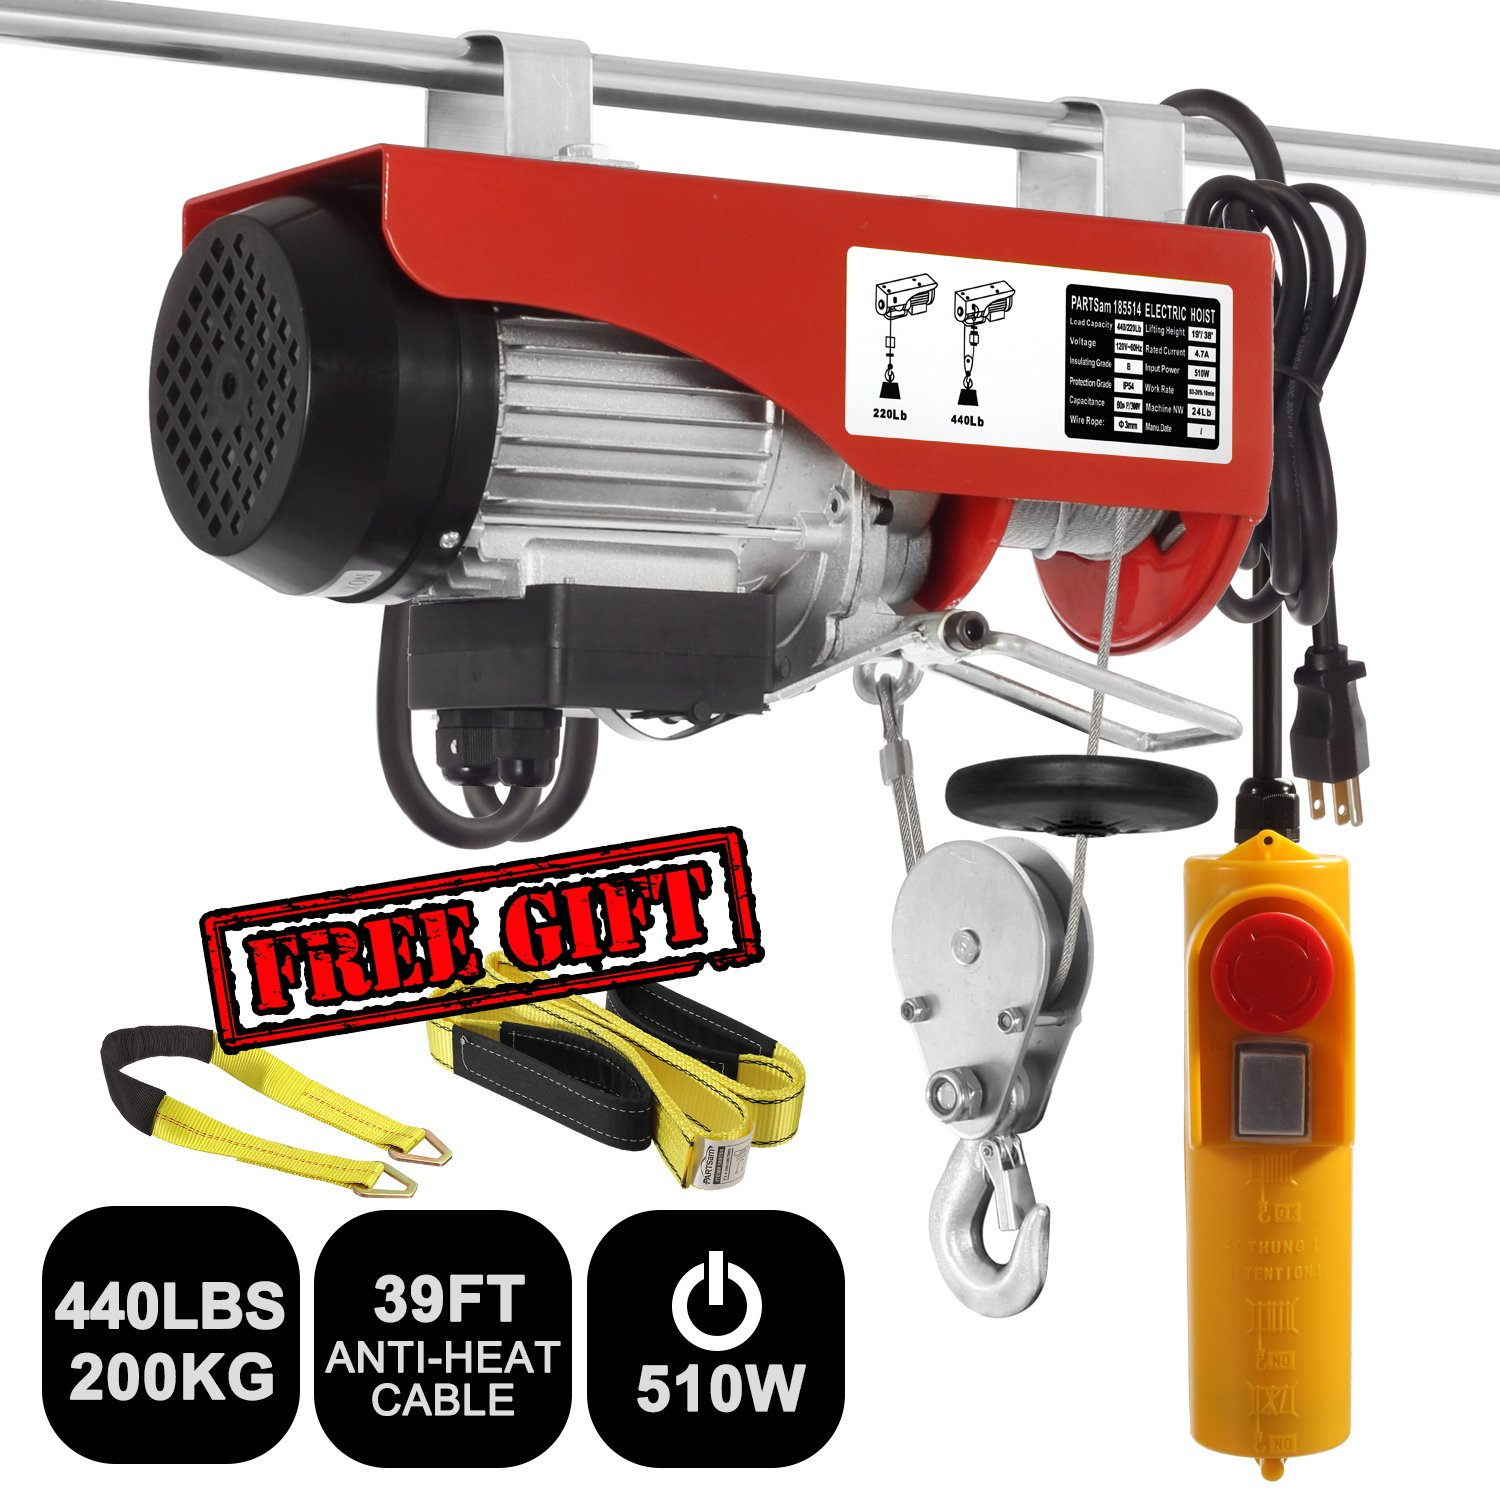 Partsam 440 lbs Lift Electric Hoist Crane Remote Control Power System, Zinc-Plated Steel Wire Overhead Crane Garage Ceiling Pulley Winch w/Premium Straps (UL/CUL Approval, w/Emergency Stop Switch) by Partsam (Image #2)